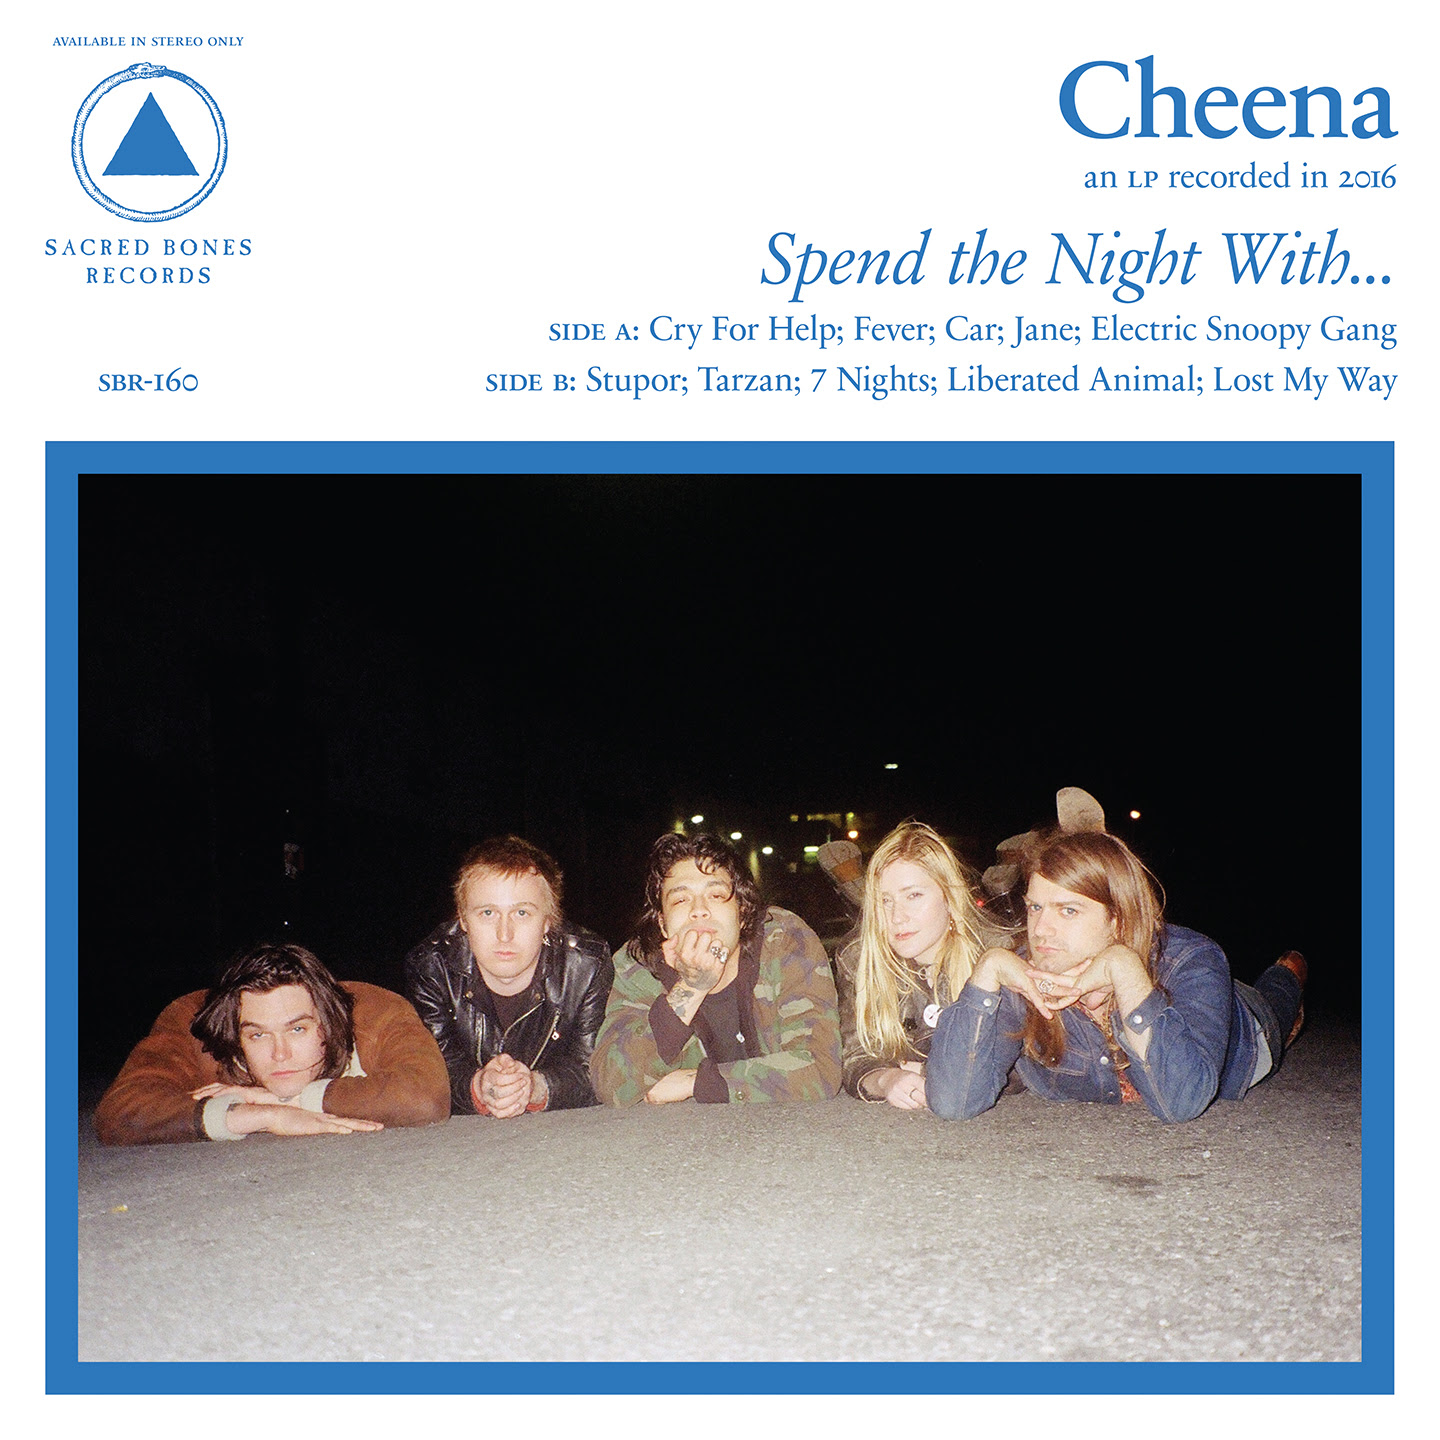 cheena-spend-night-with